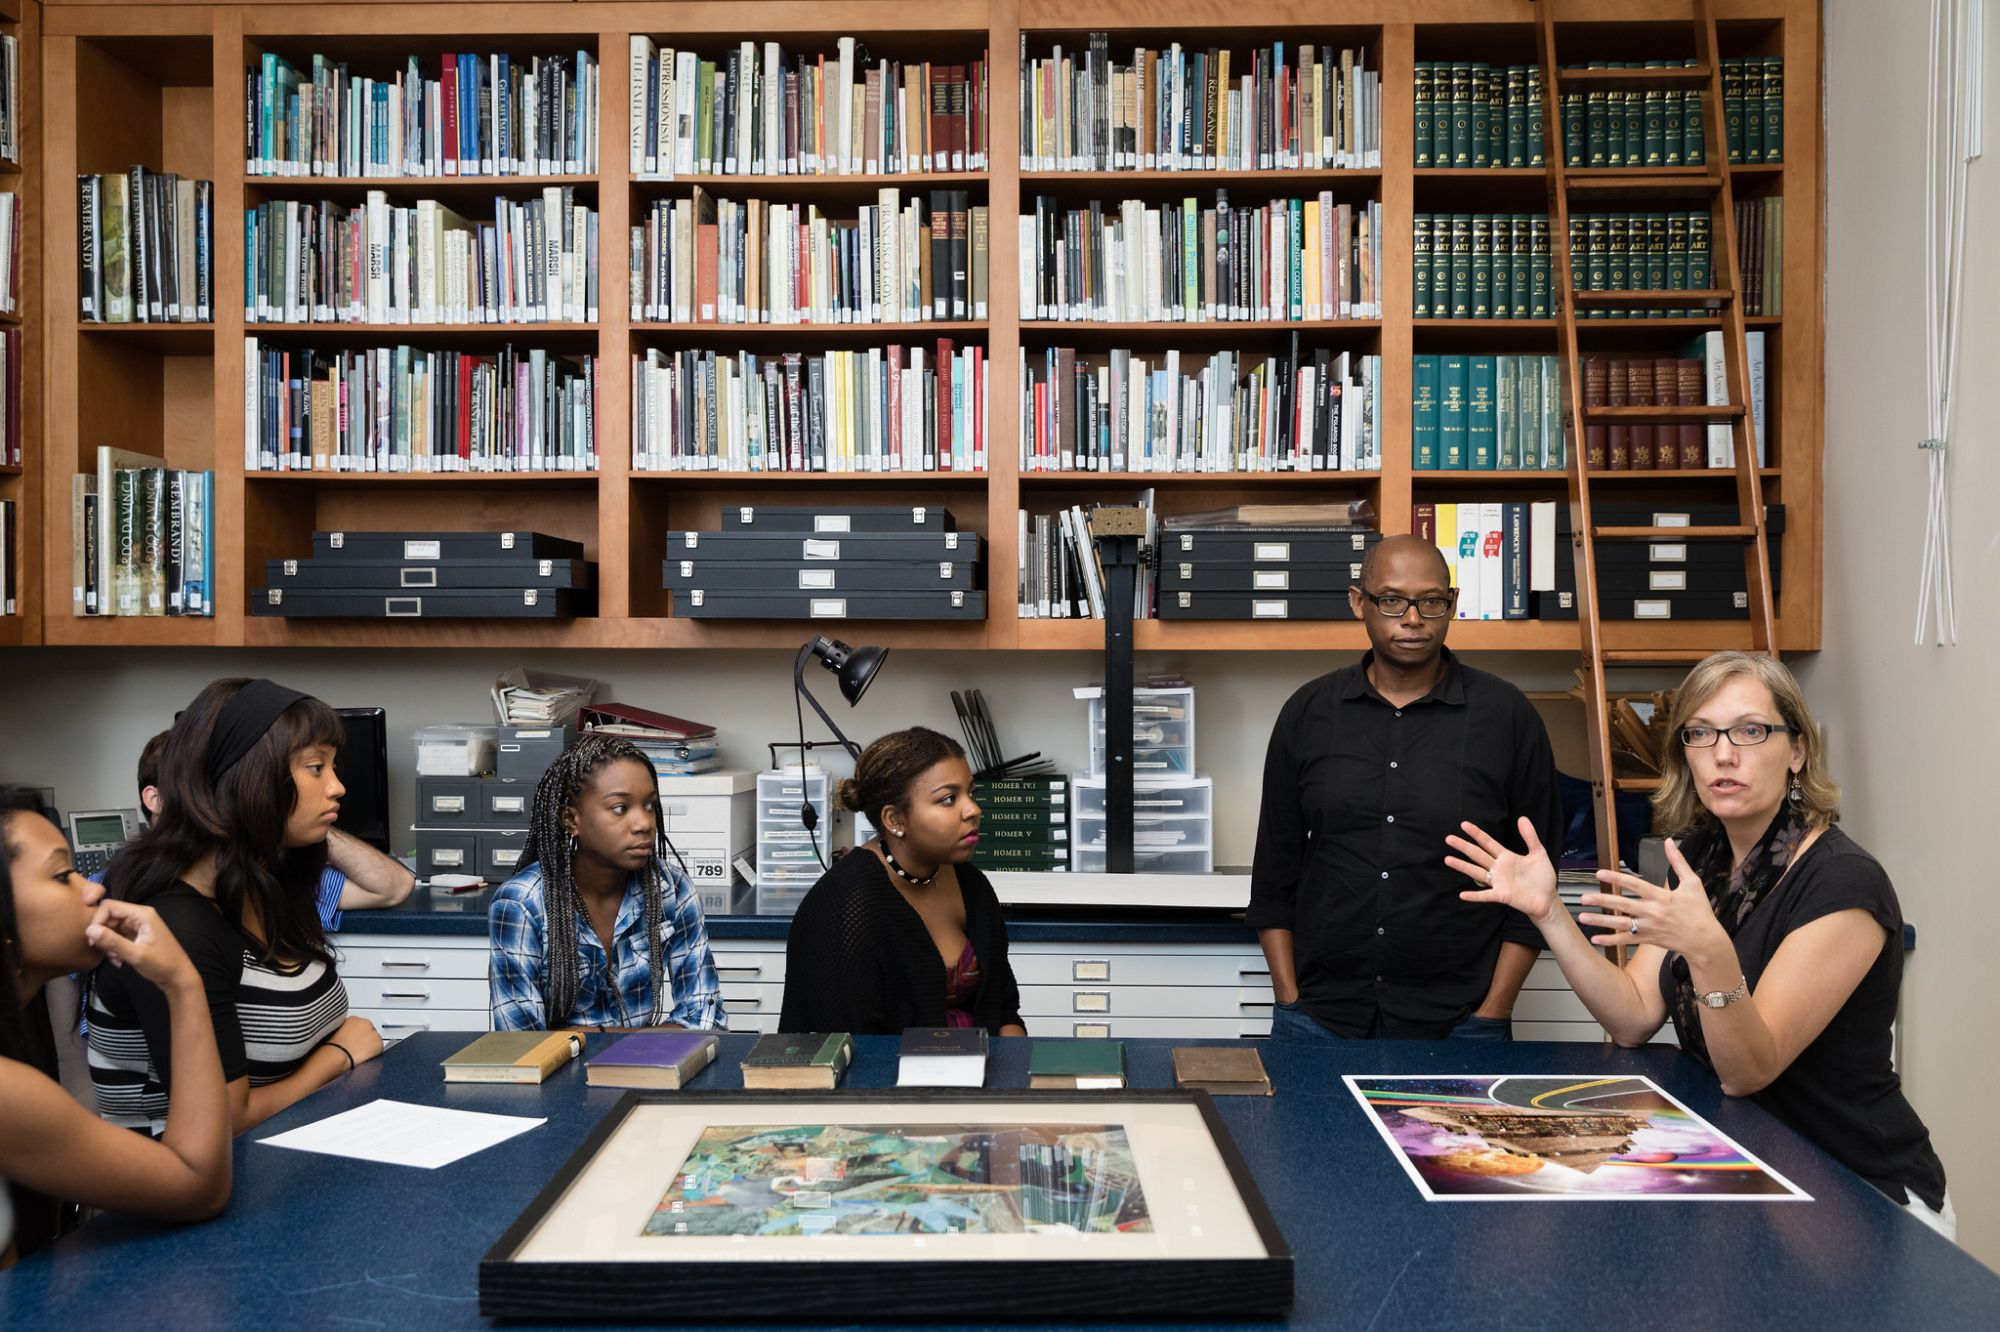 Professor Chambliss and students discussing art in the CFAM.